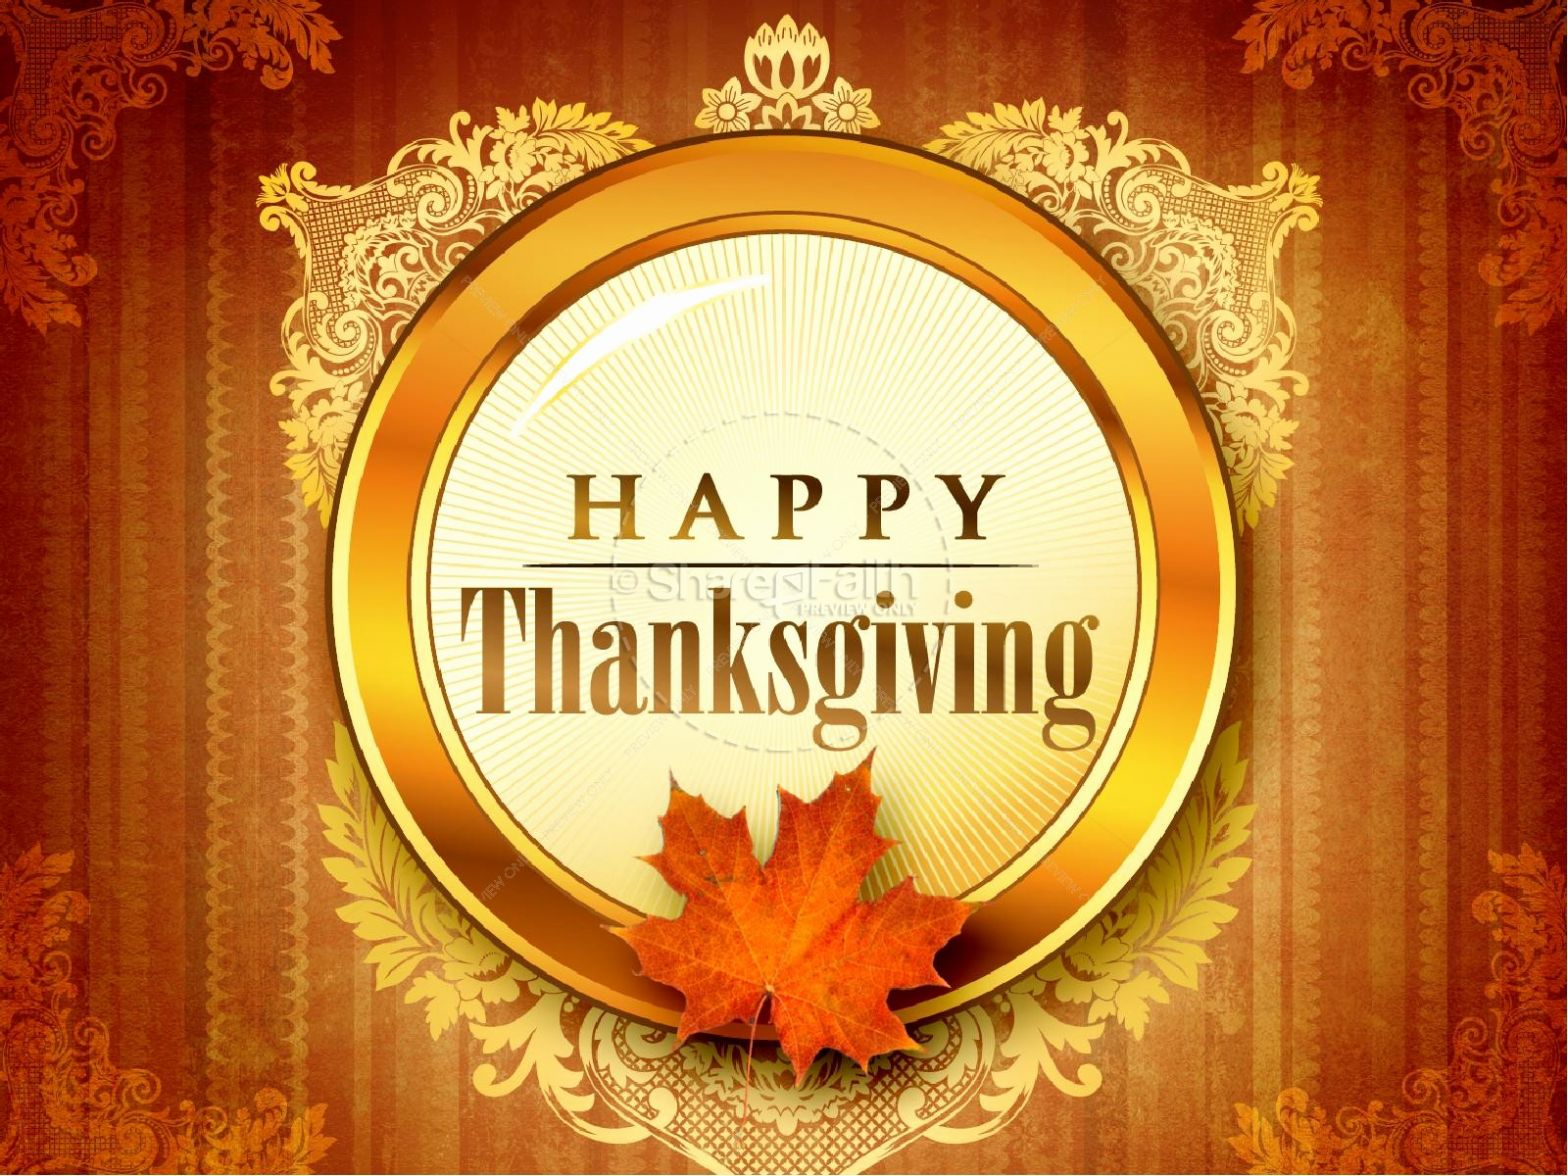 Thanksgiving Powerpoint and Thanksgiving Celebration Powerpoint Template